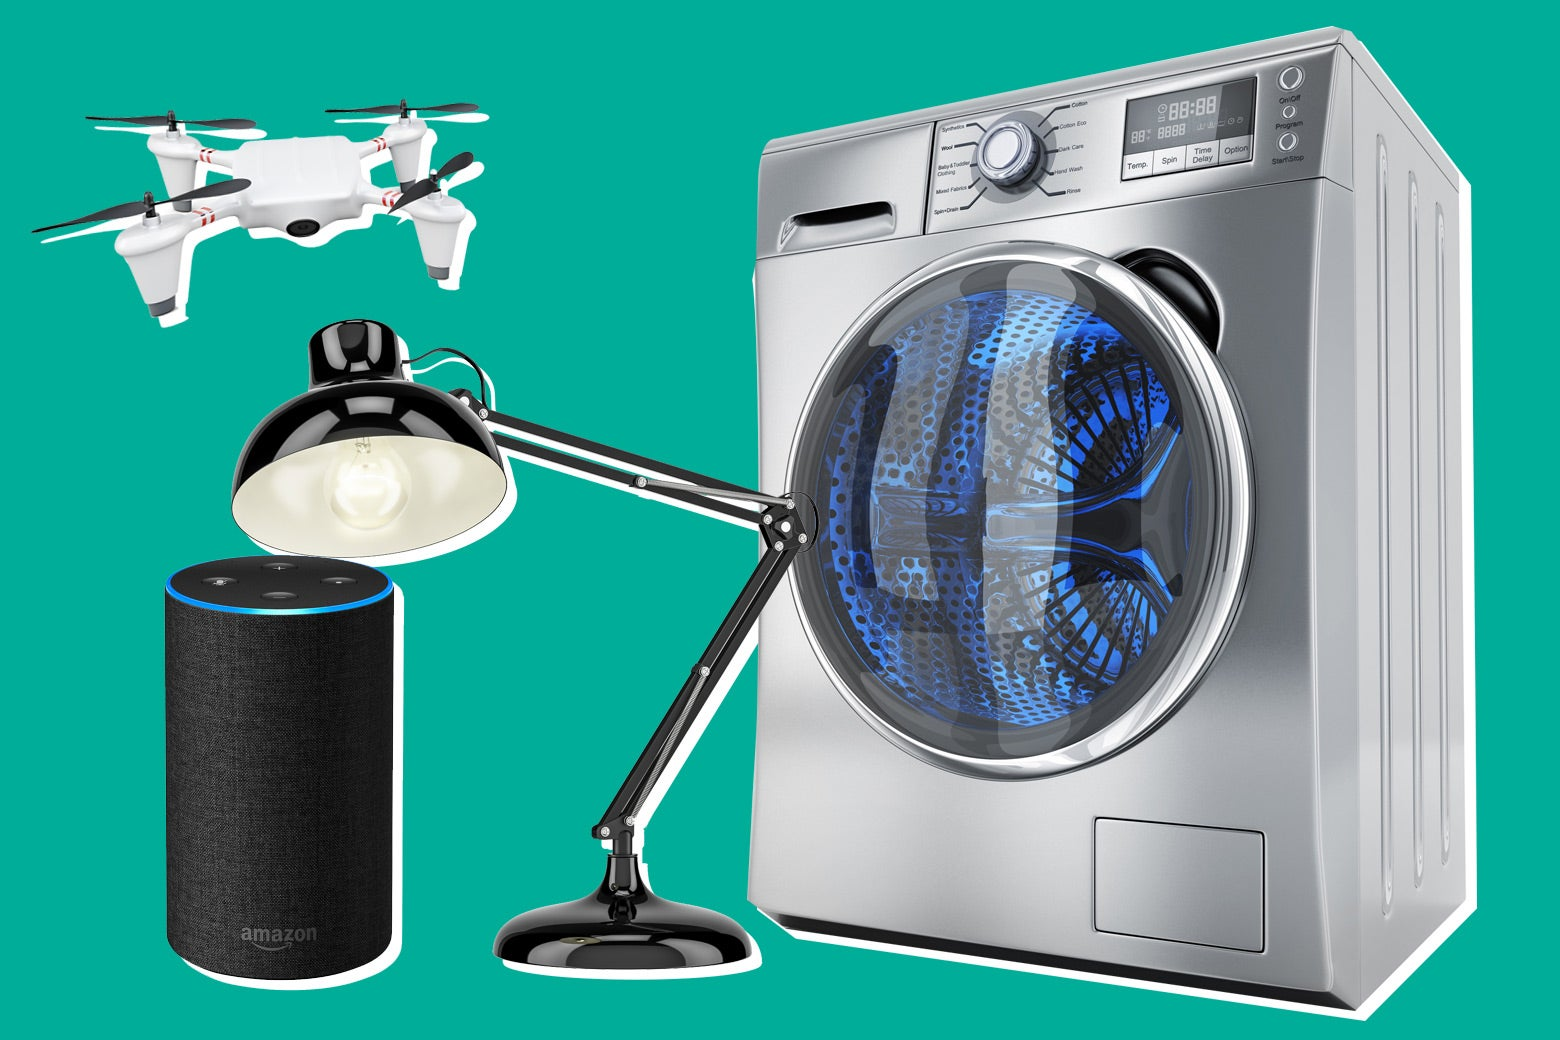 Photo illustration: an Amazon Echo, a drone, an office lamp, and a washing machine.